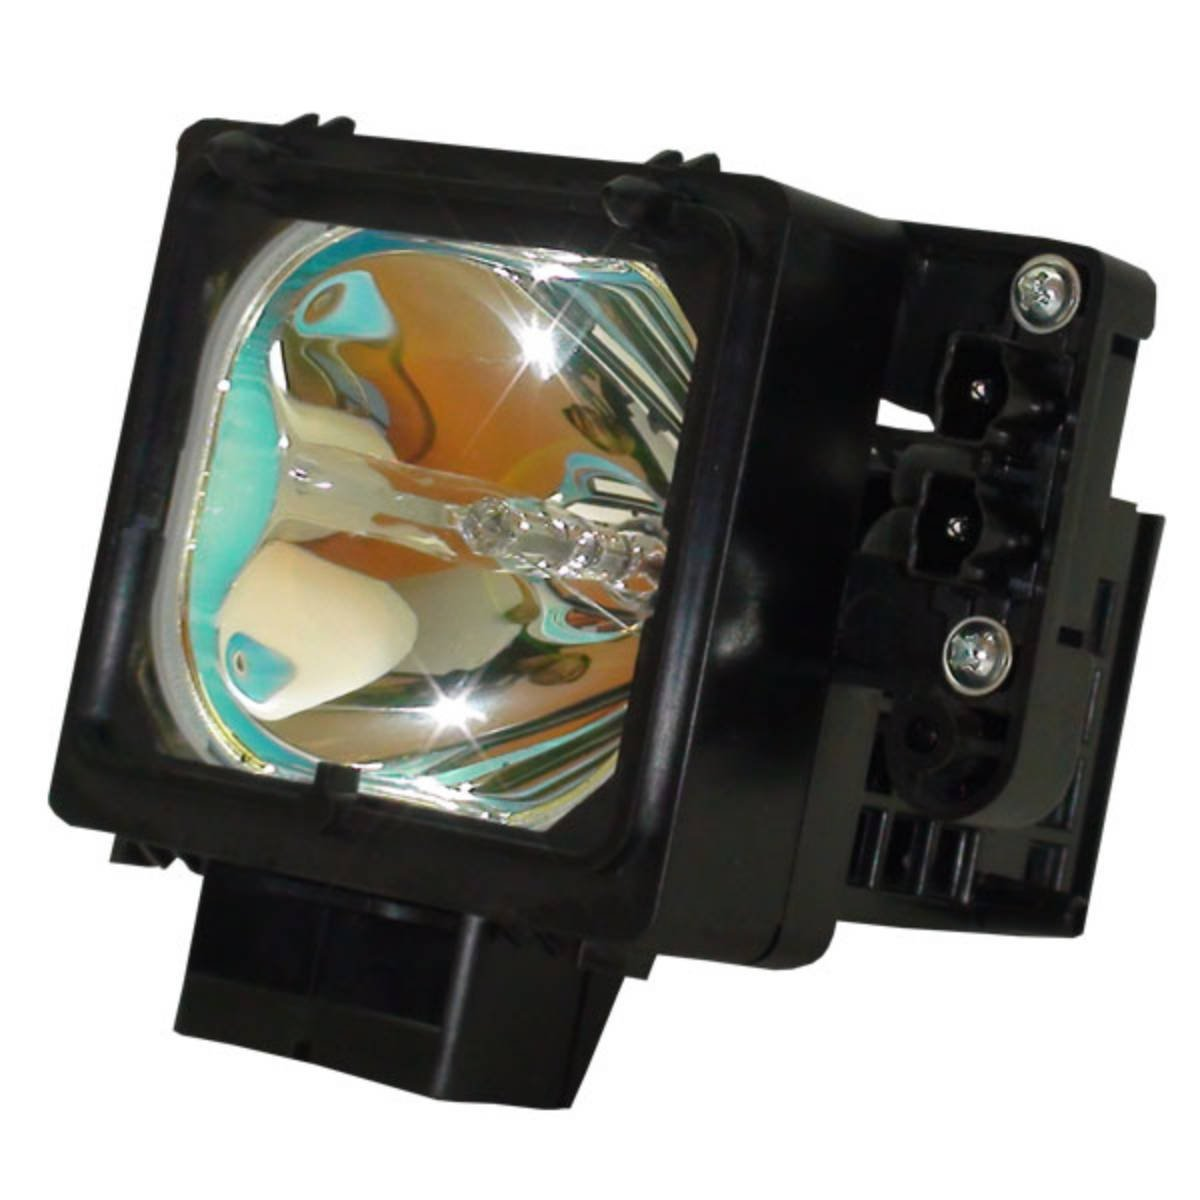 XL-2200 Lamp Replacement for Sony TV